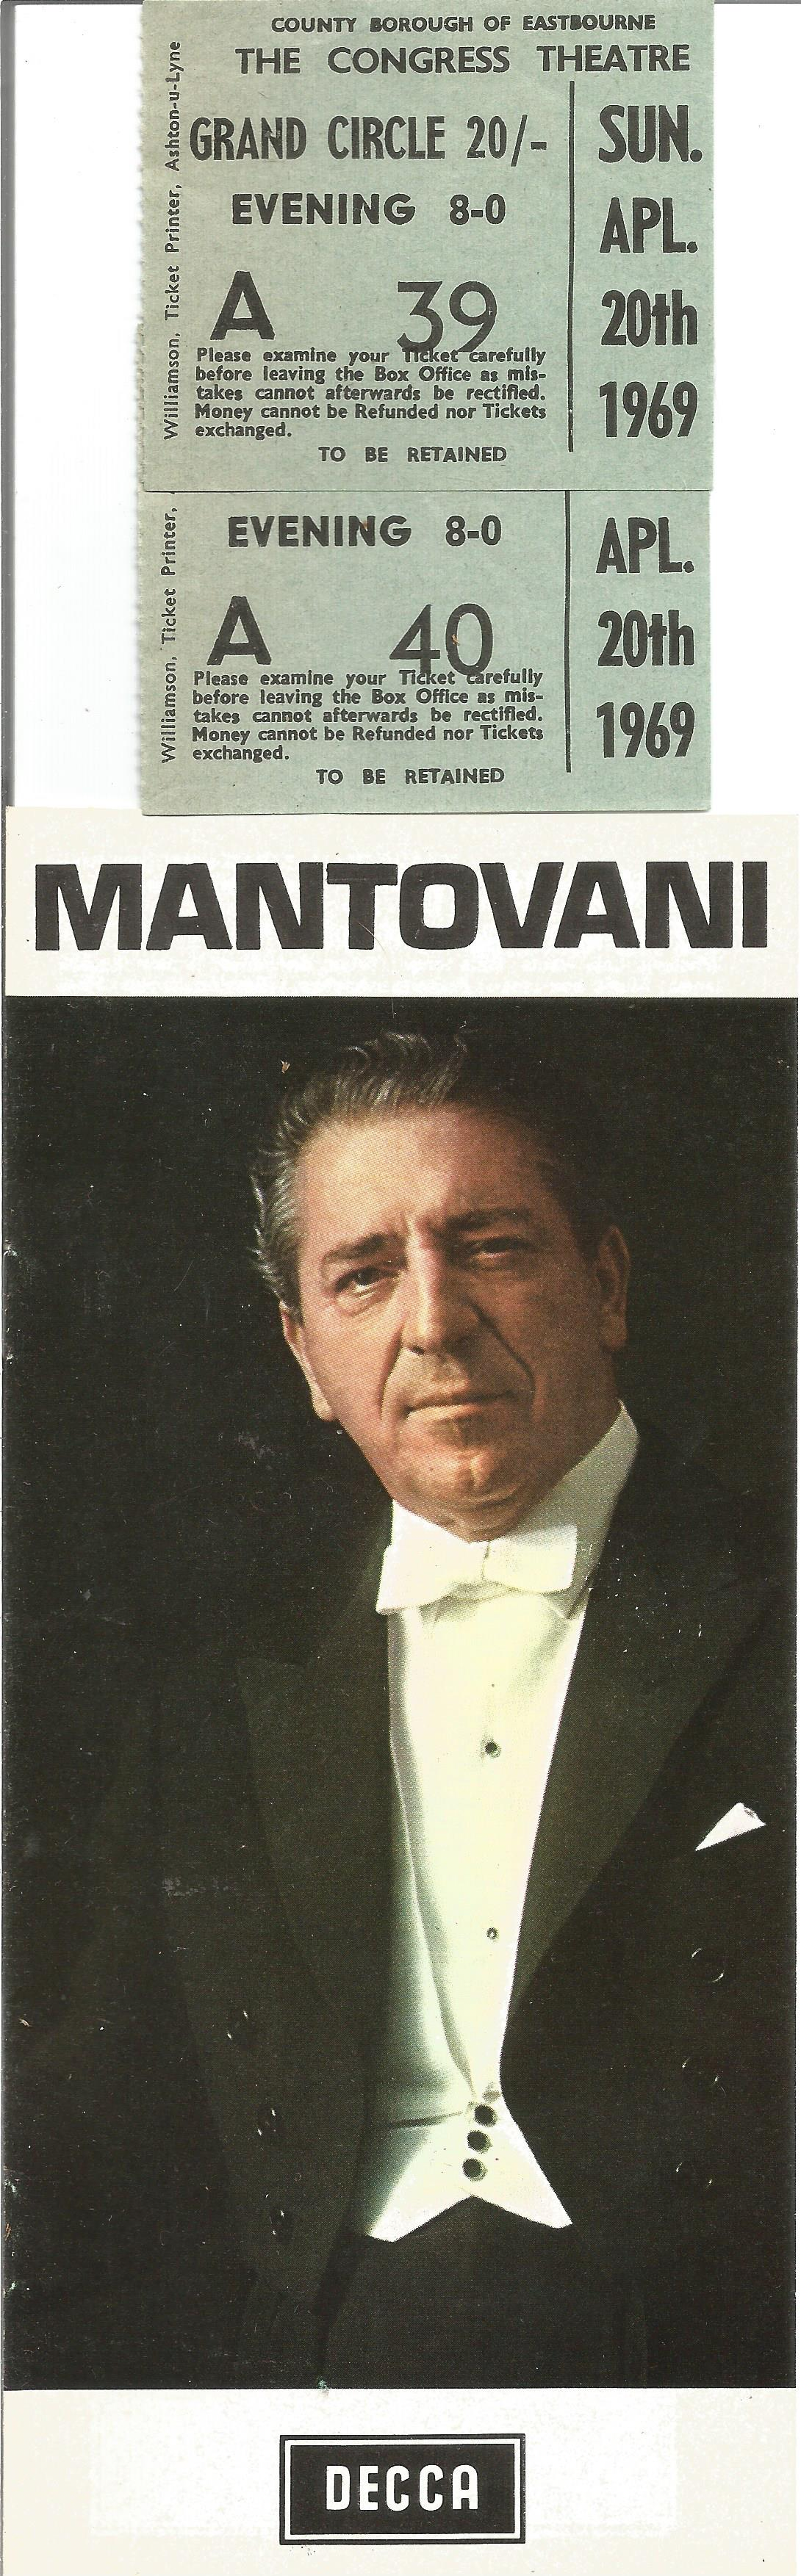 Signed Mantovani In House Brochure 1969 from a performance at Eastbourne Ticket stubs & Decca - Image 4 of 4